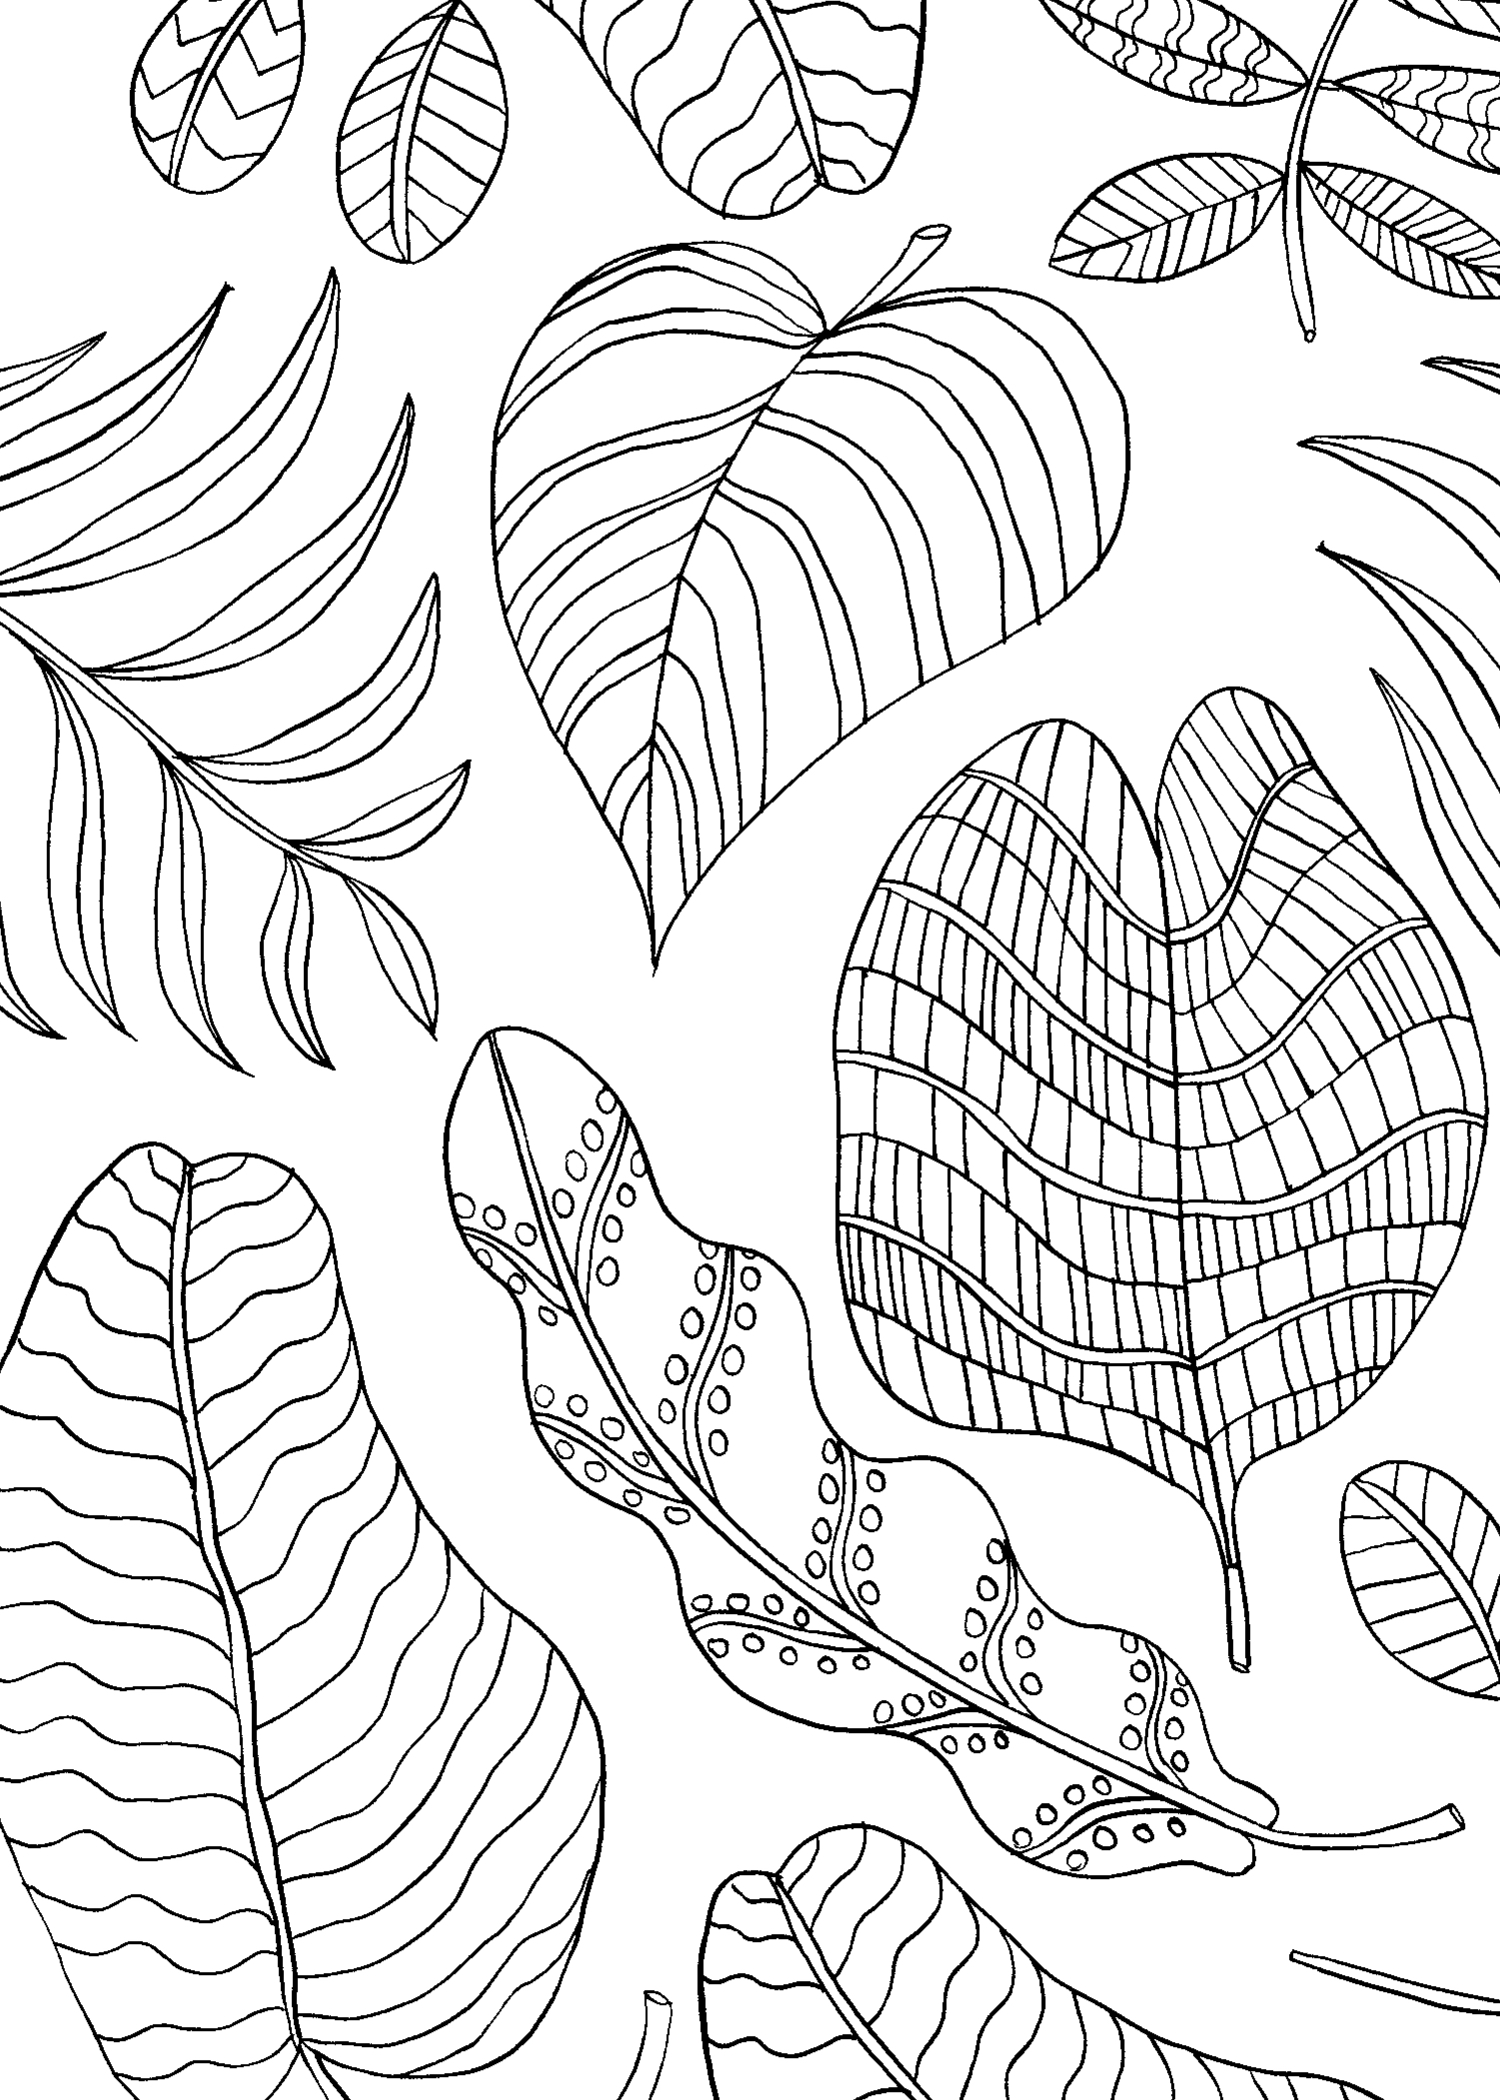 Little book of coloring for mindfulness - Click Here To Print The Coloring Pages